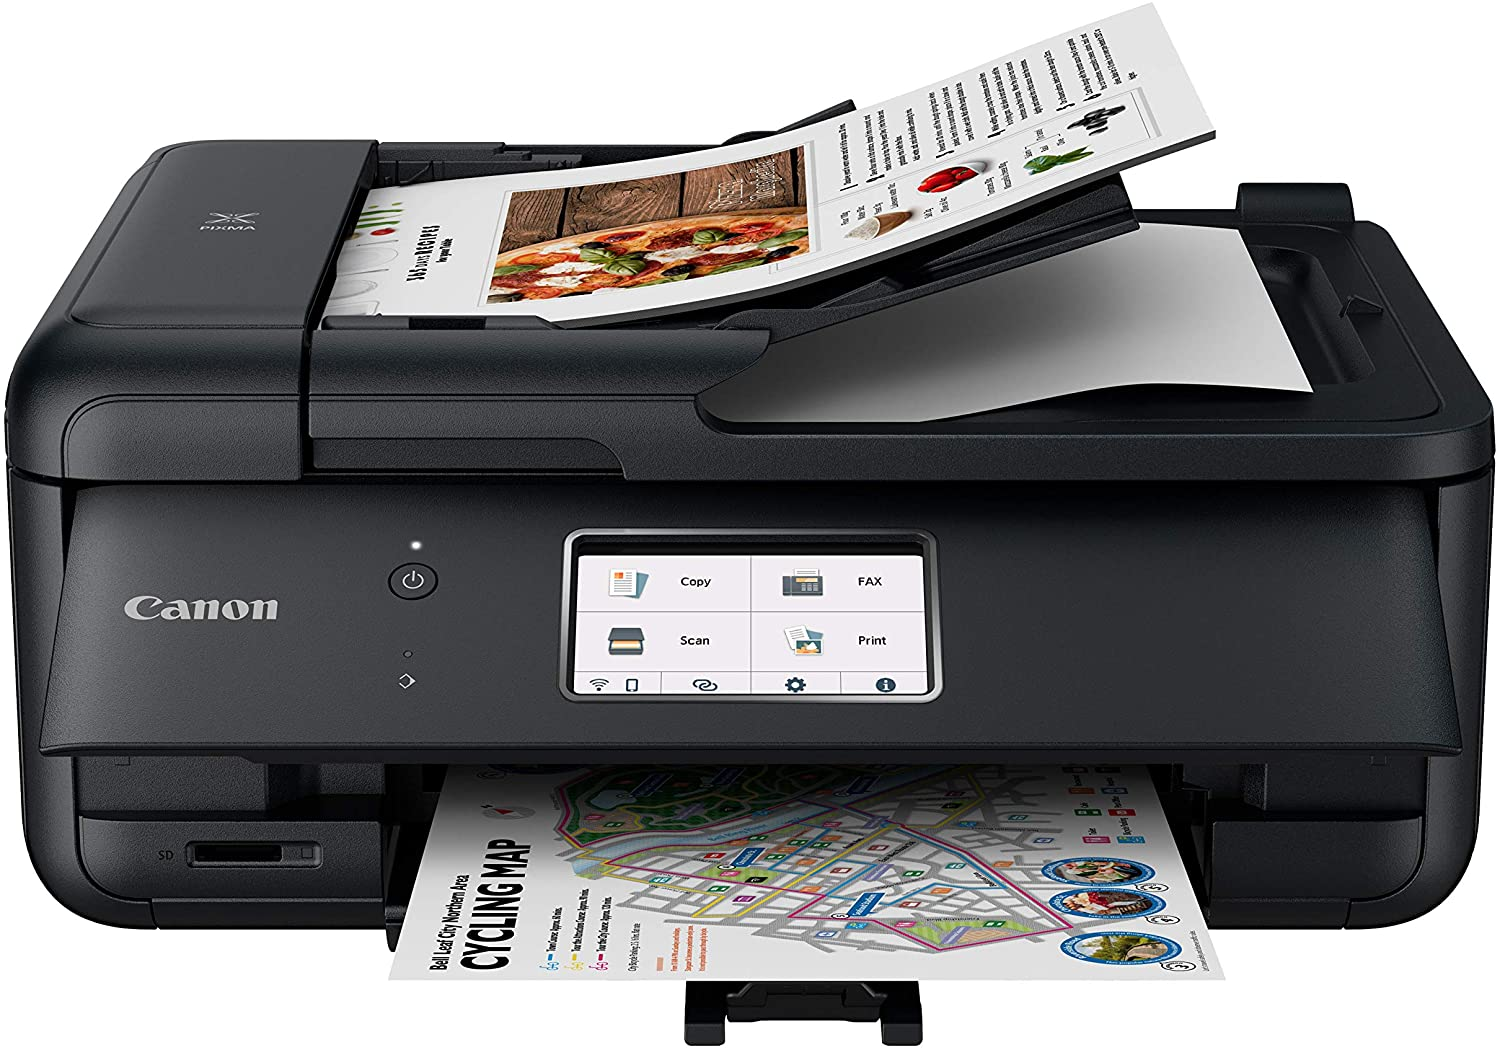 Canon TR8620 All-In-One Printer For Home Office Copier Scanner Fax Auto Document Feeder uk reviews